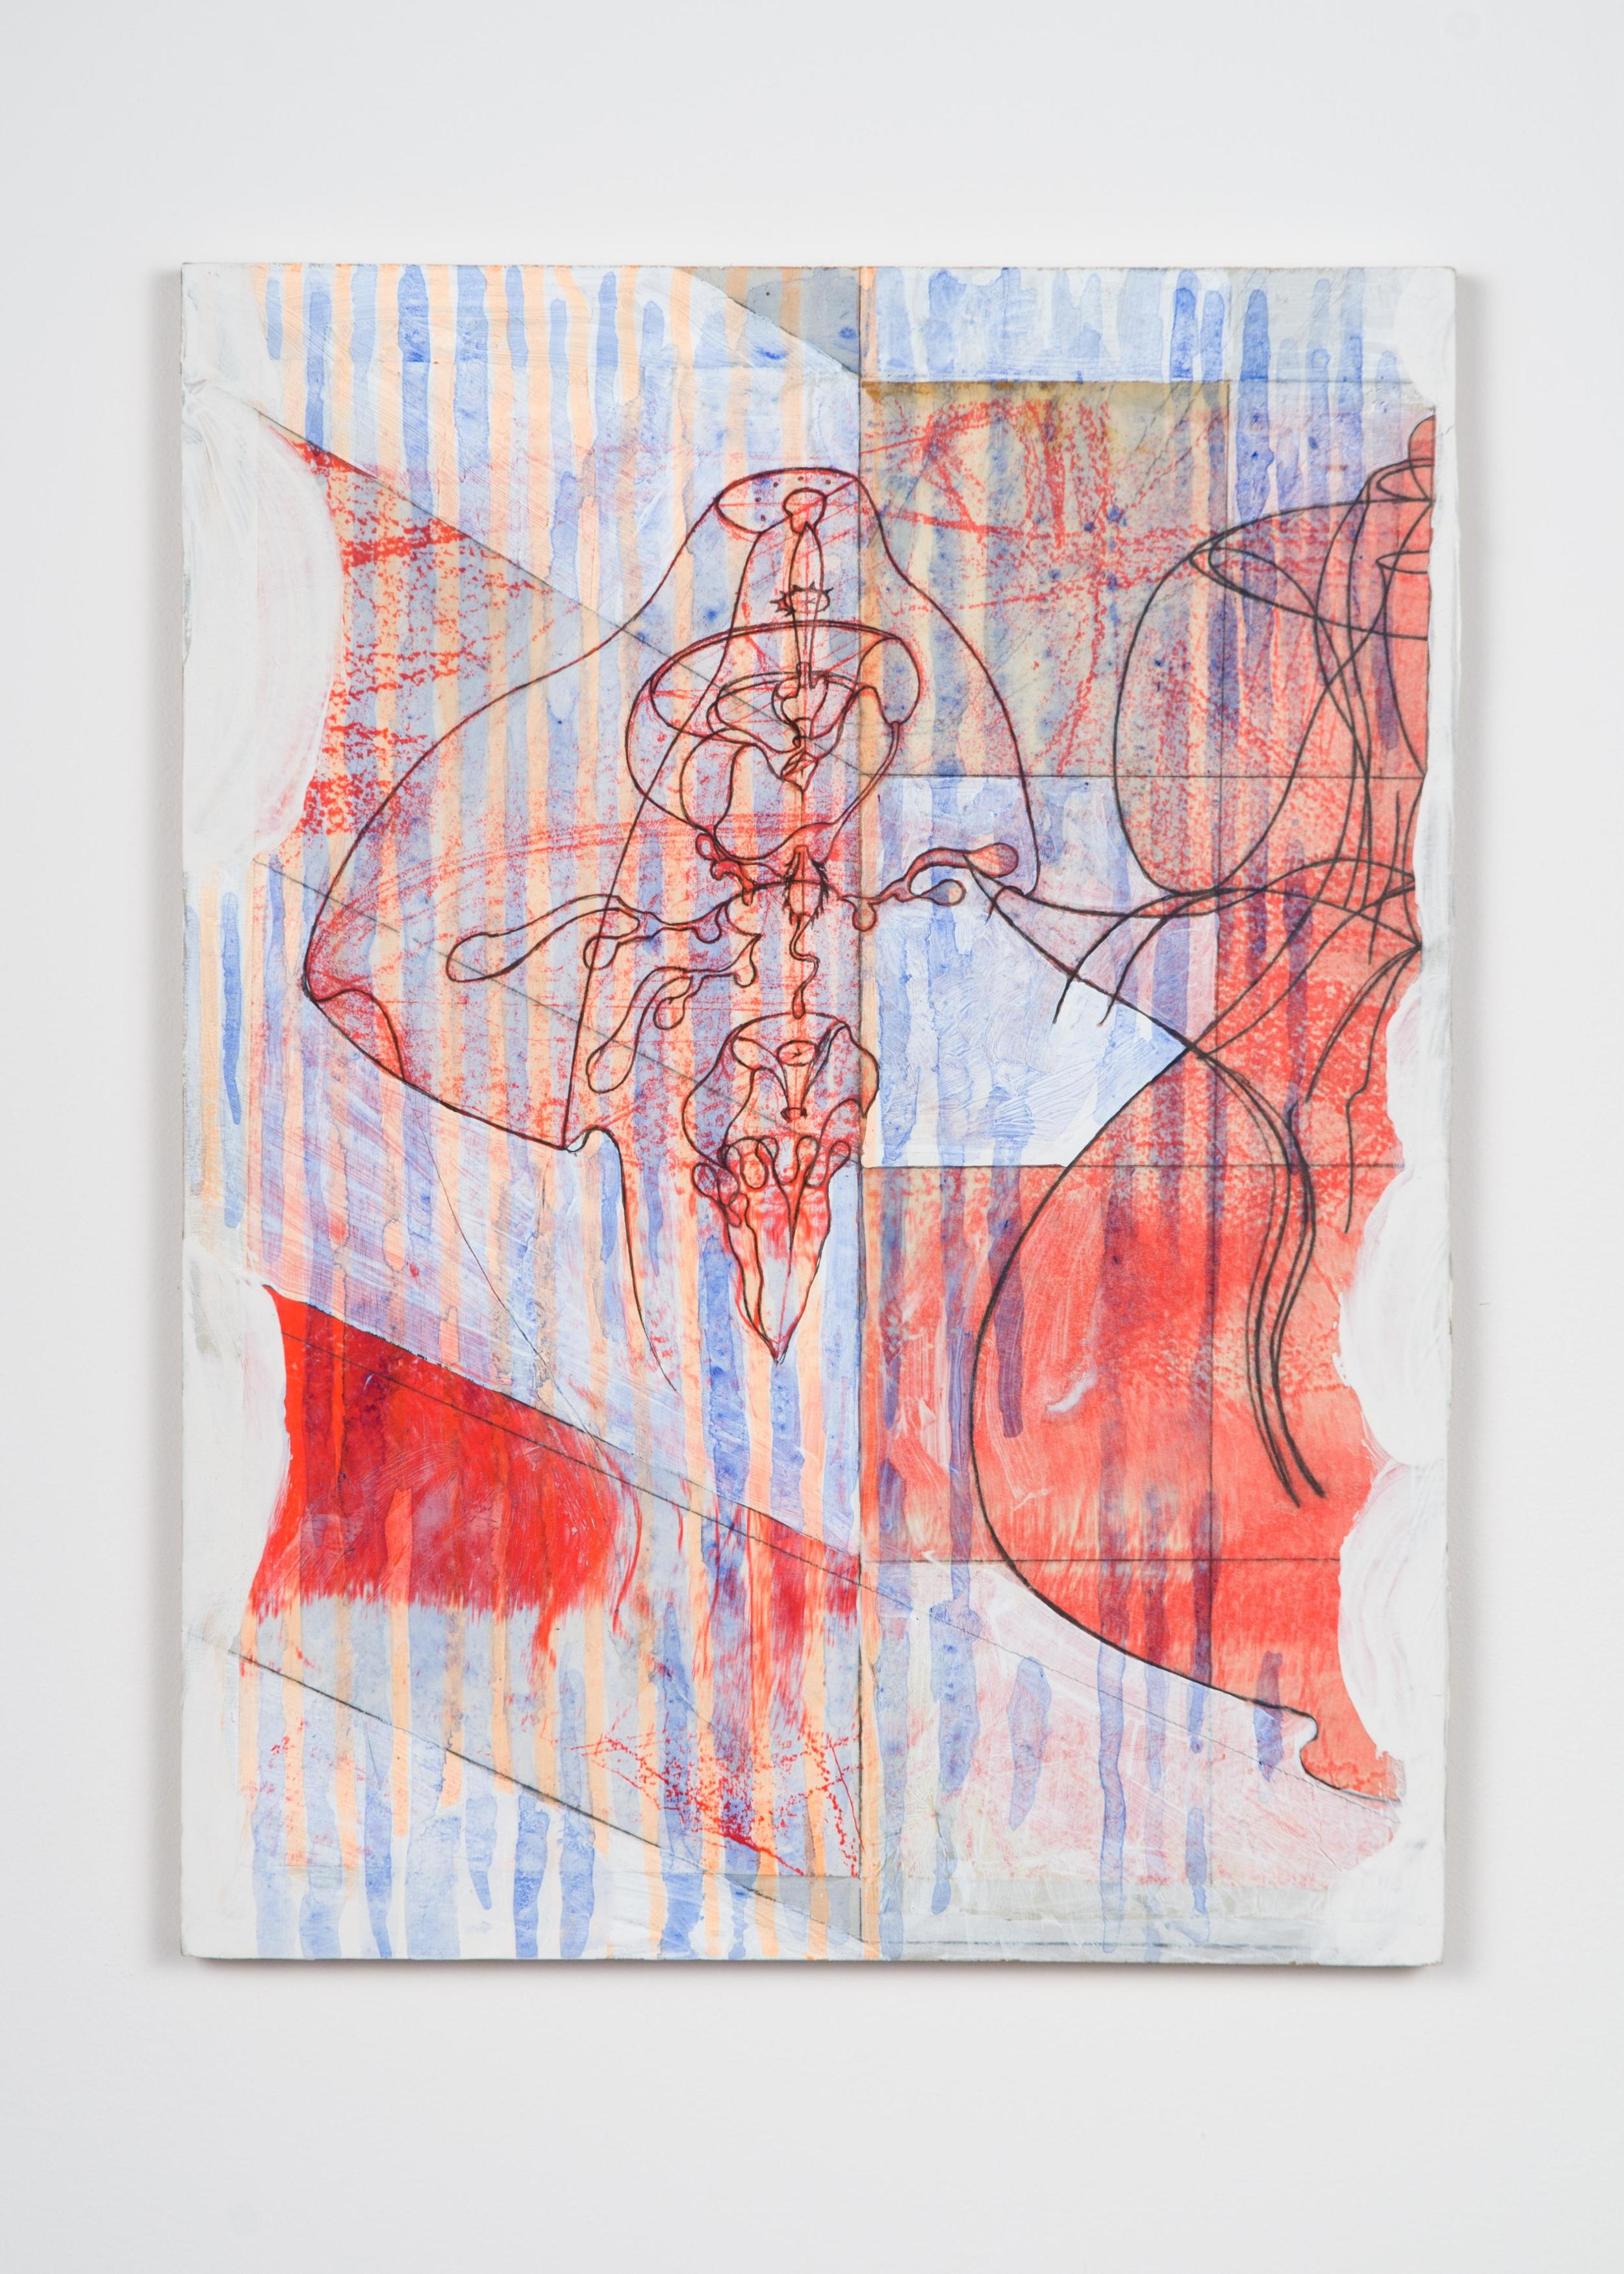 """"""" Untitled (Exile Sun Drawing) """"   Tristin Lowe   2014   Acrylic, Pencil, Ink, and Collaged Paper on Panel    12 5/8"""" x 9 1/4"""""""